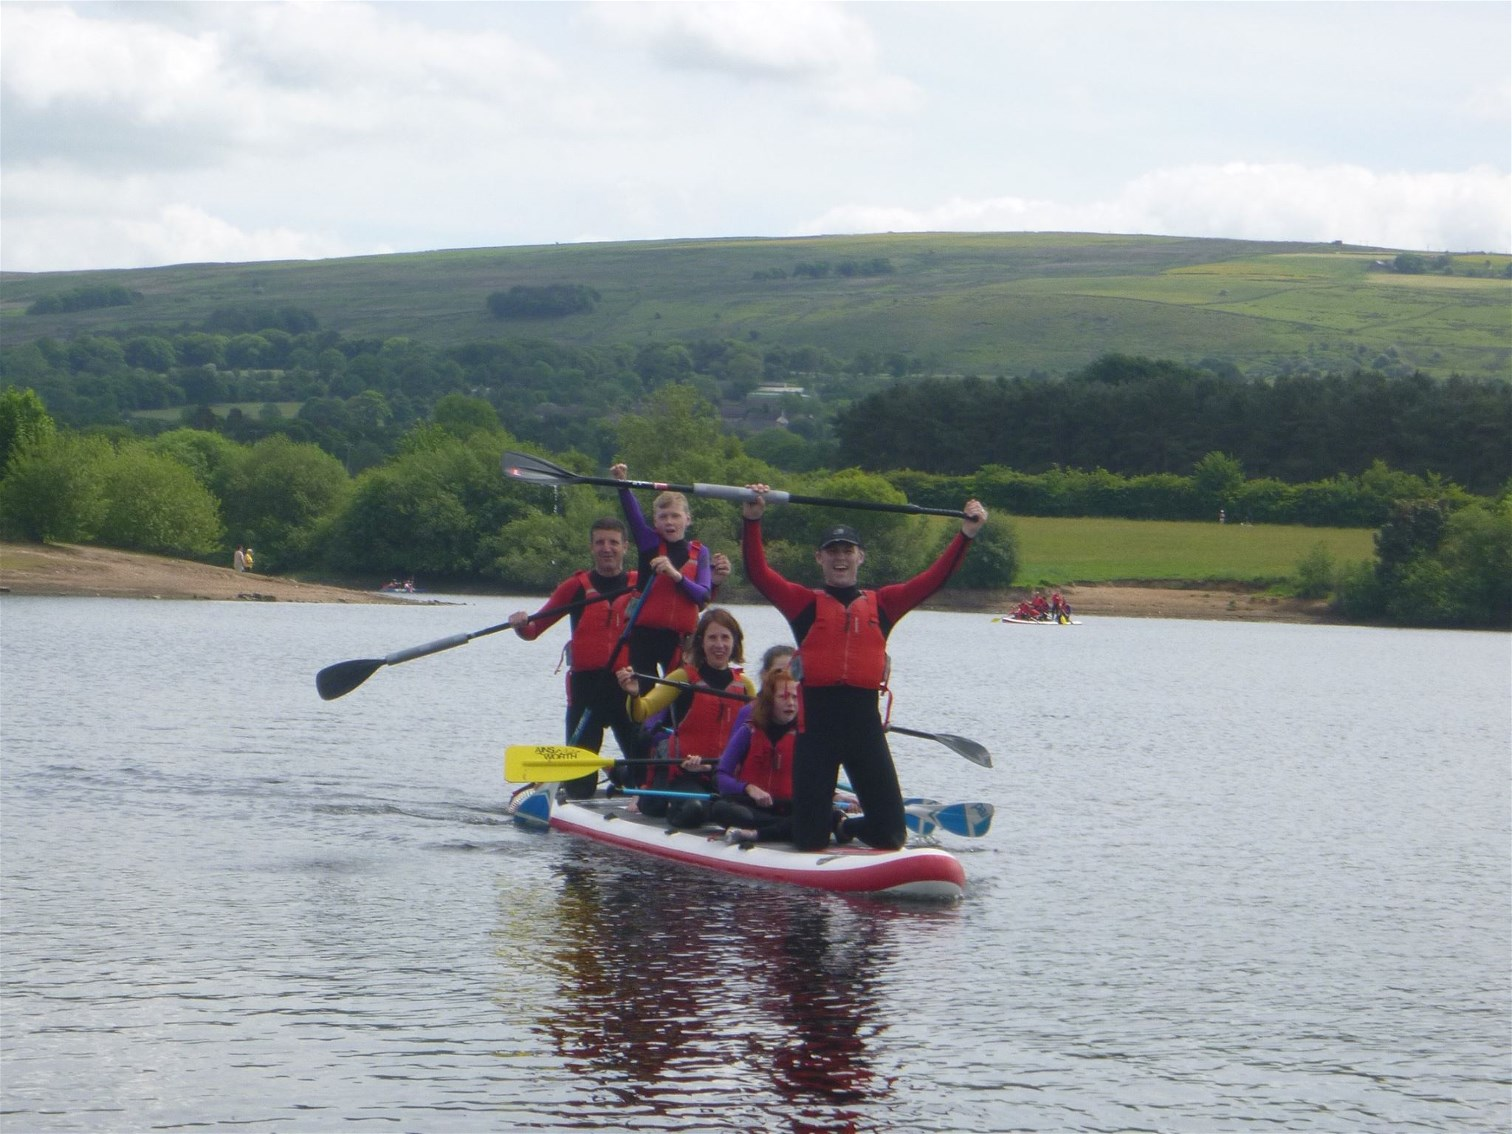 Tittesworth Watersports and Activity Centre Staffordshire - Third Image